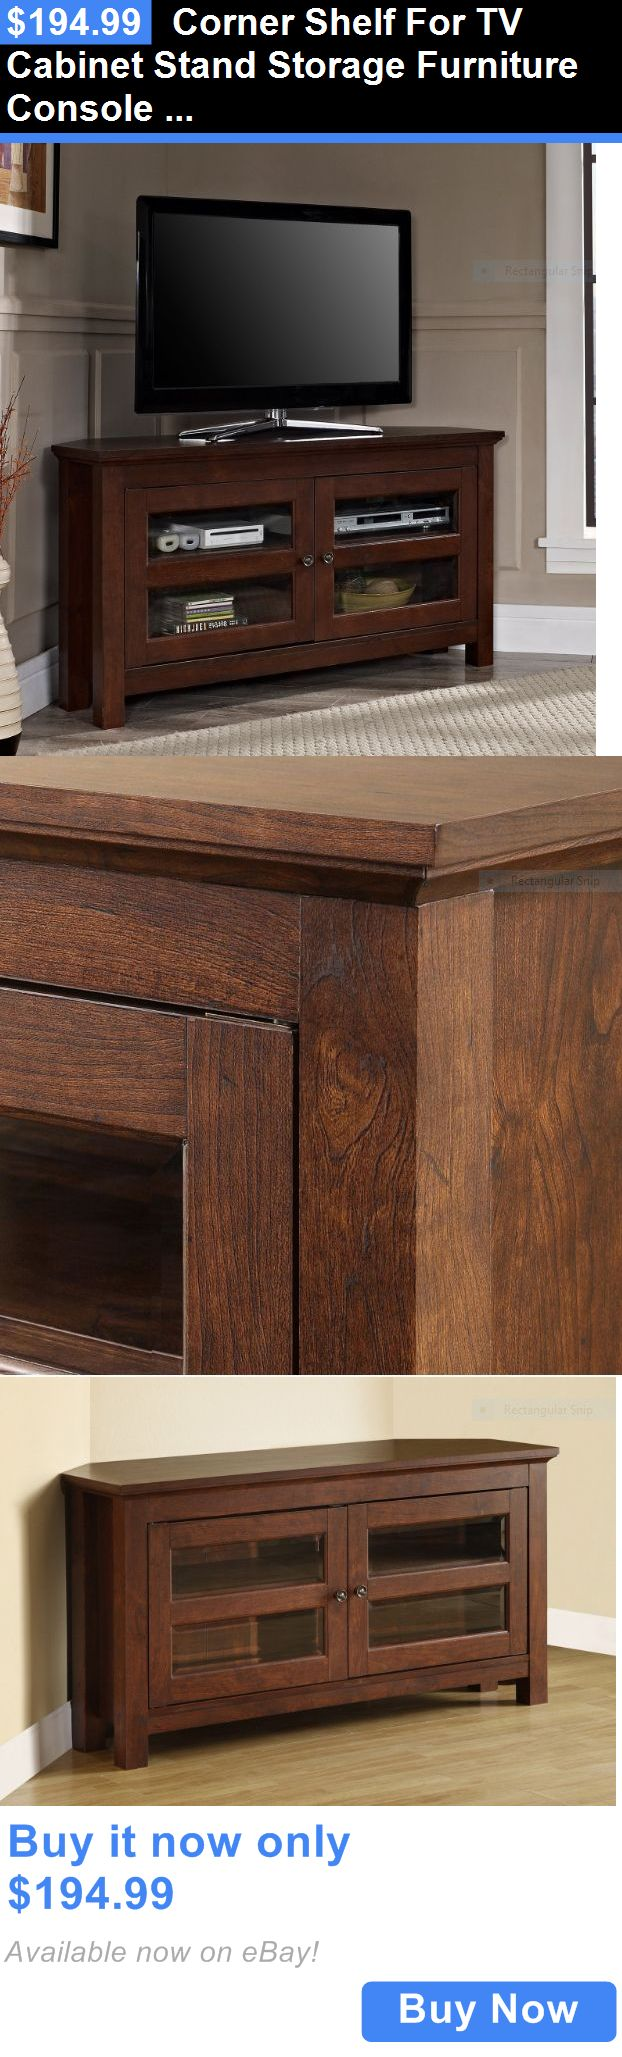 entertainment units tv stands corner shelf for tv cabinet stand storage furniture console entertainment center